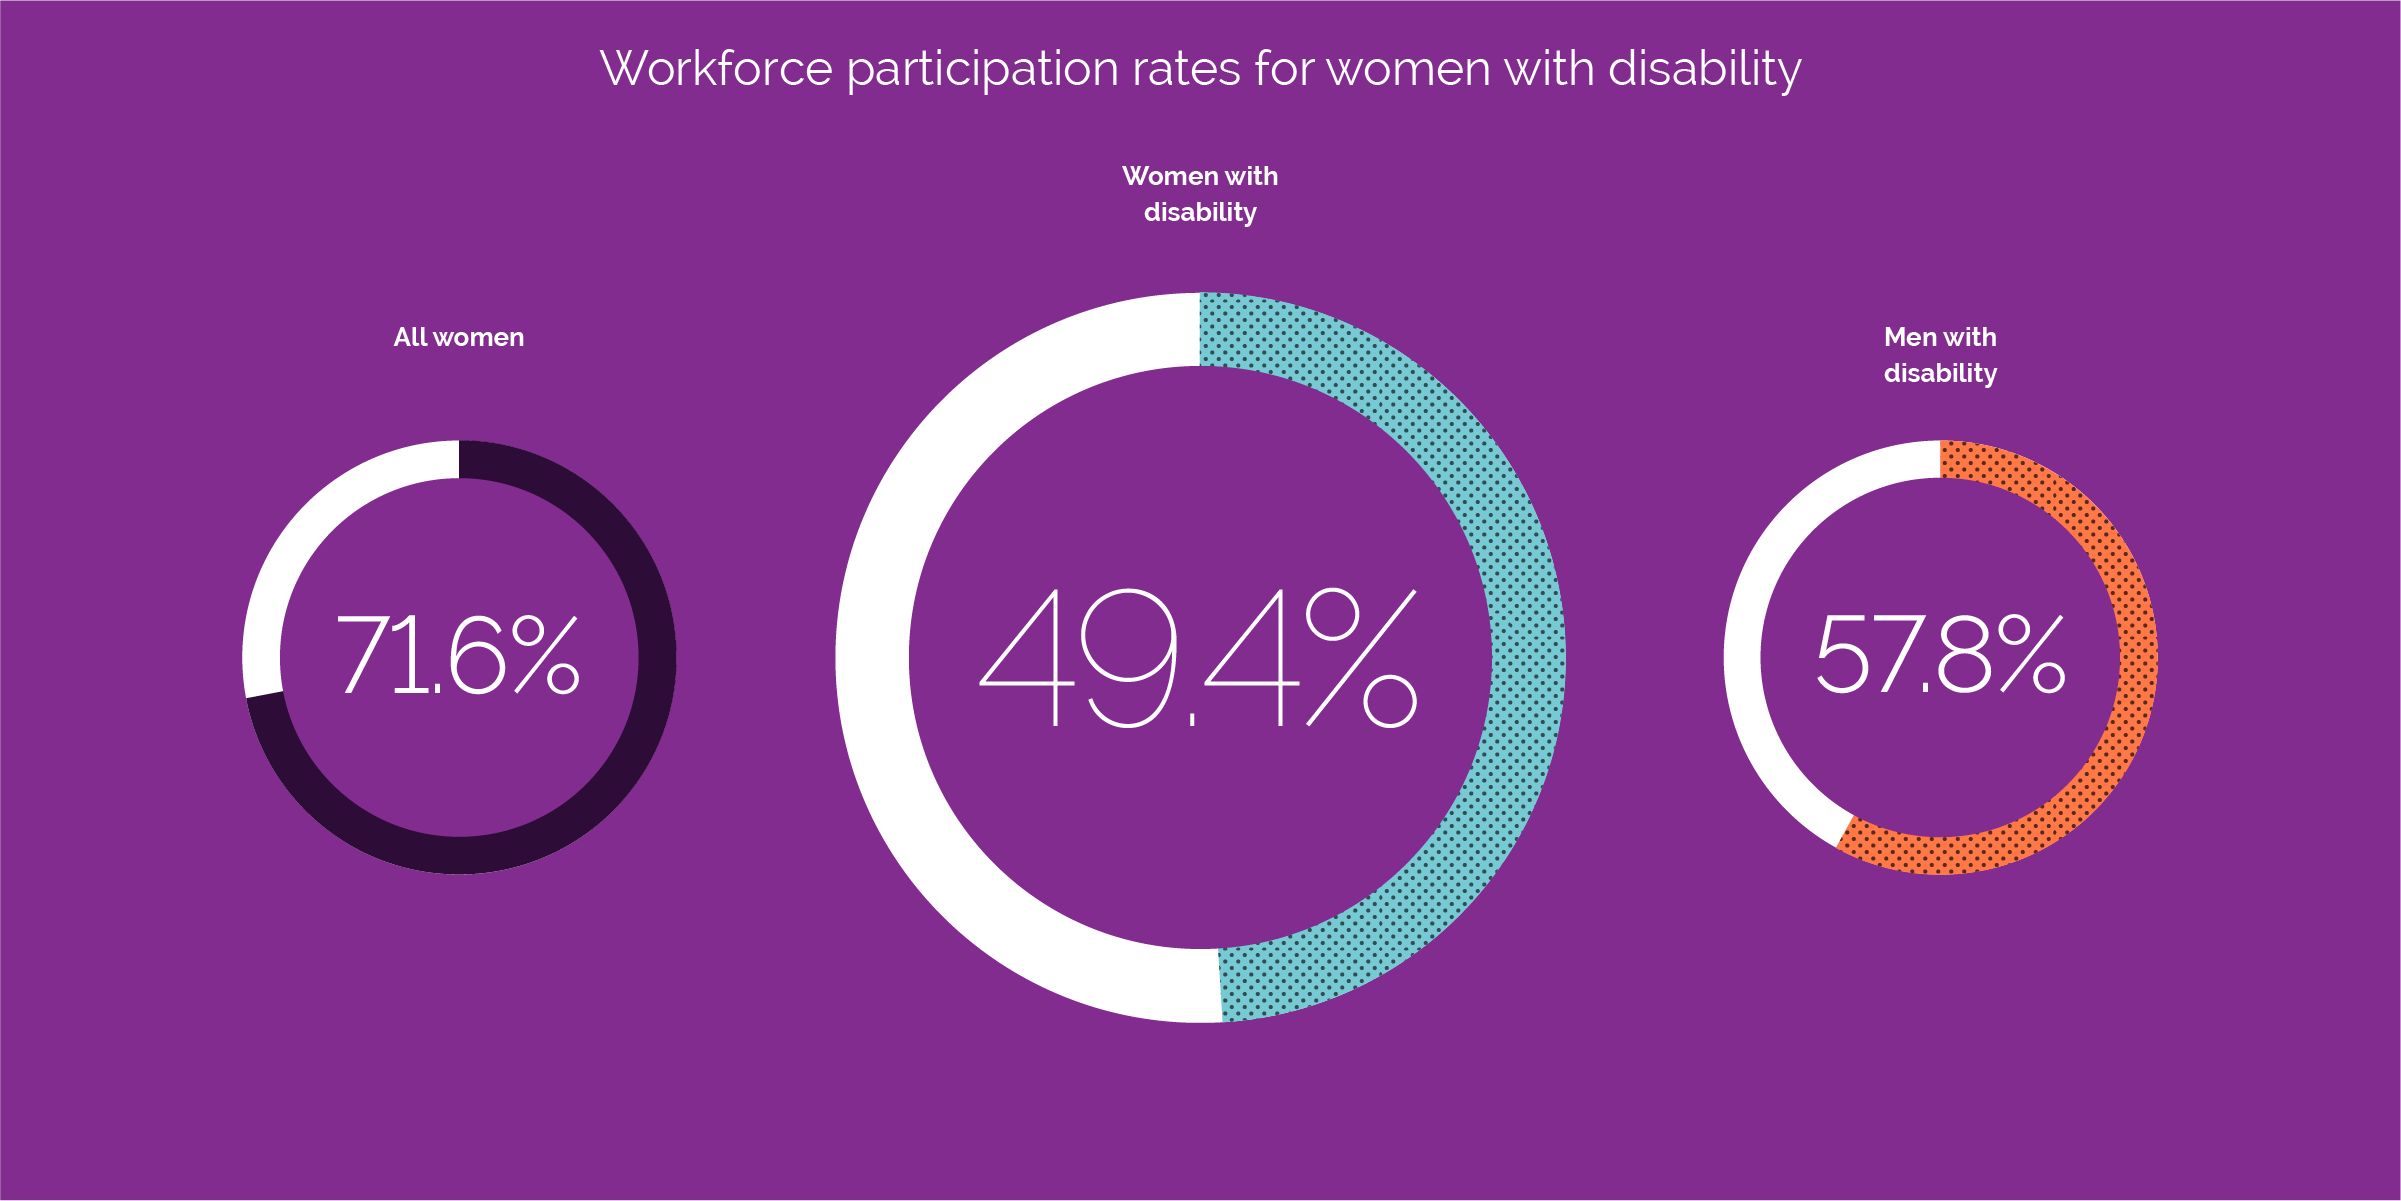 workforce participation rates for women with disability compared with all women